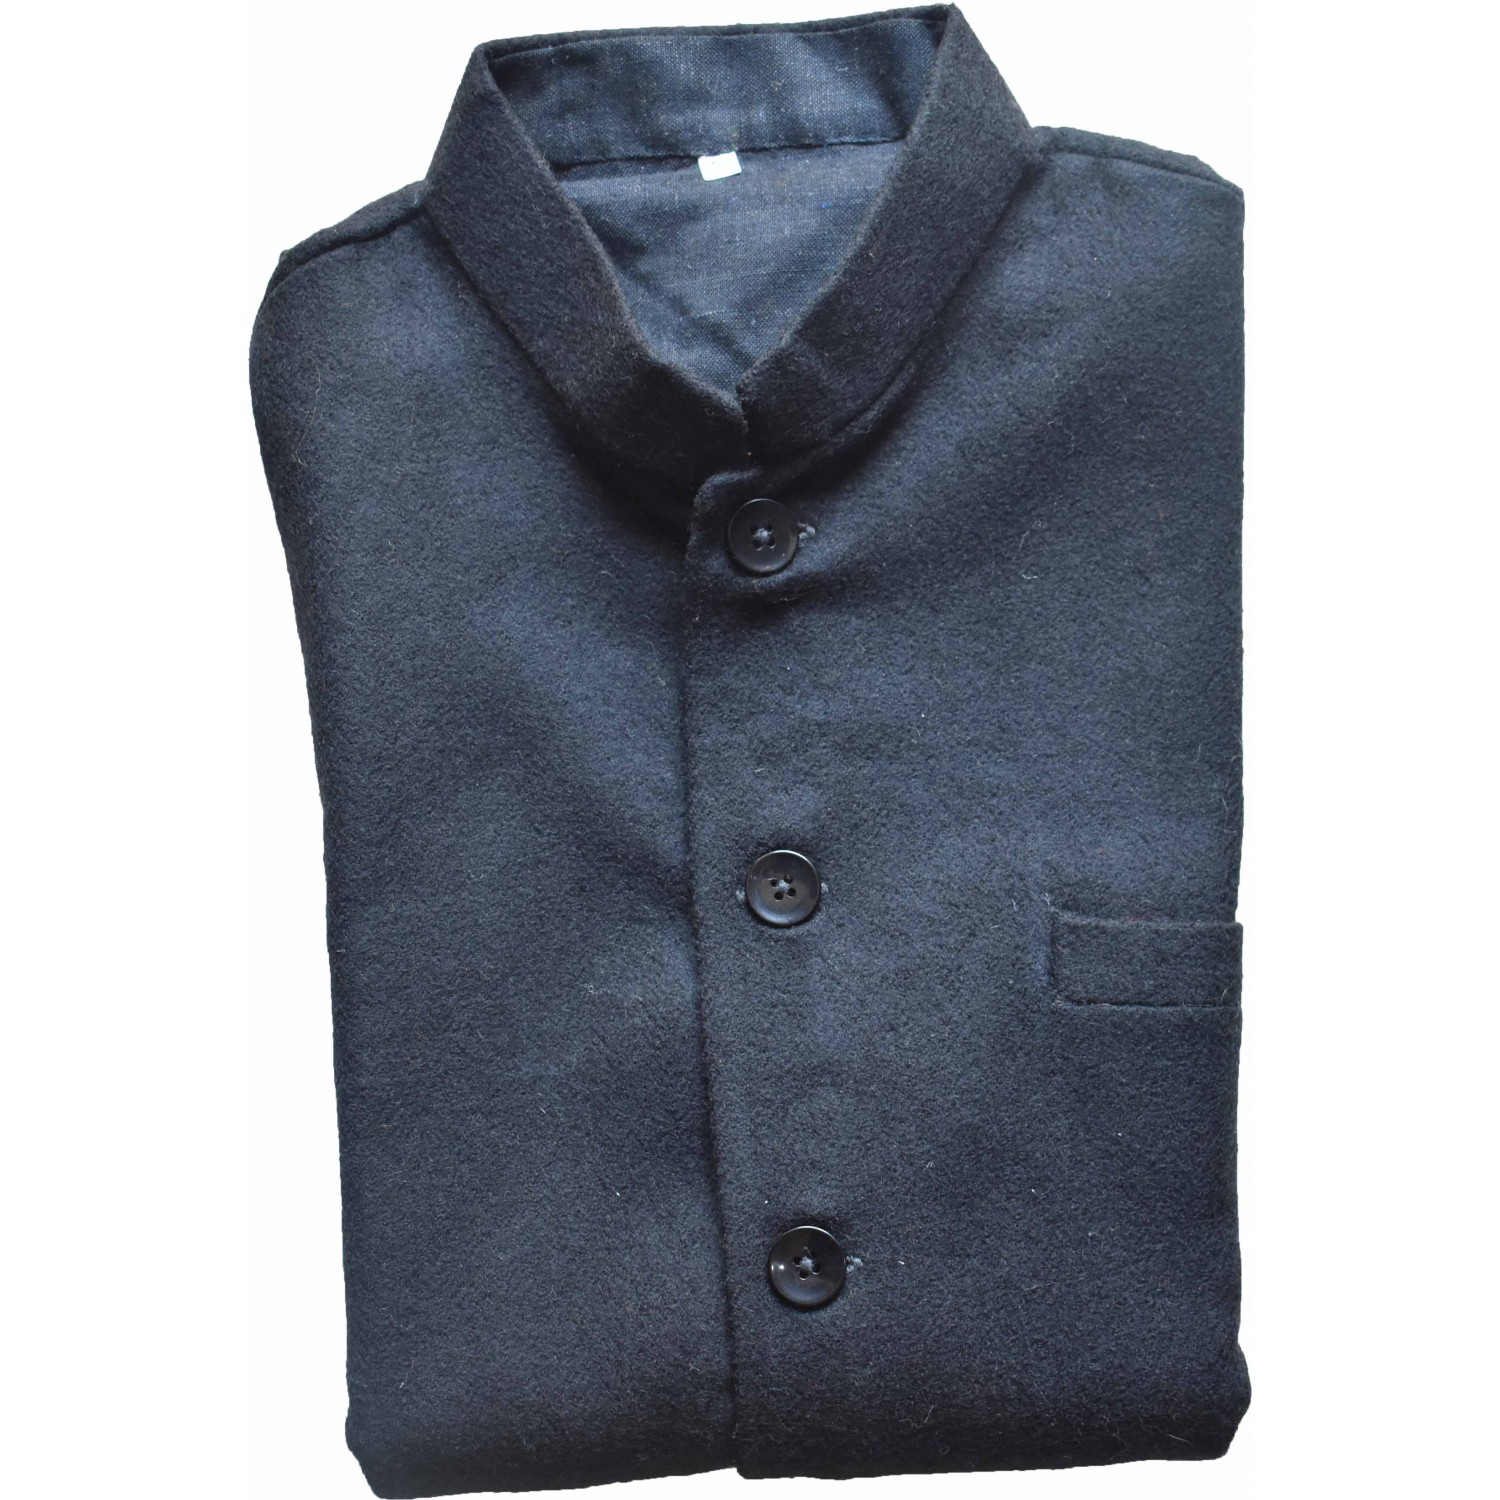 Jacket Nehru 40 No 100% handloom Merino Wool 2/20 Black